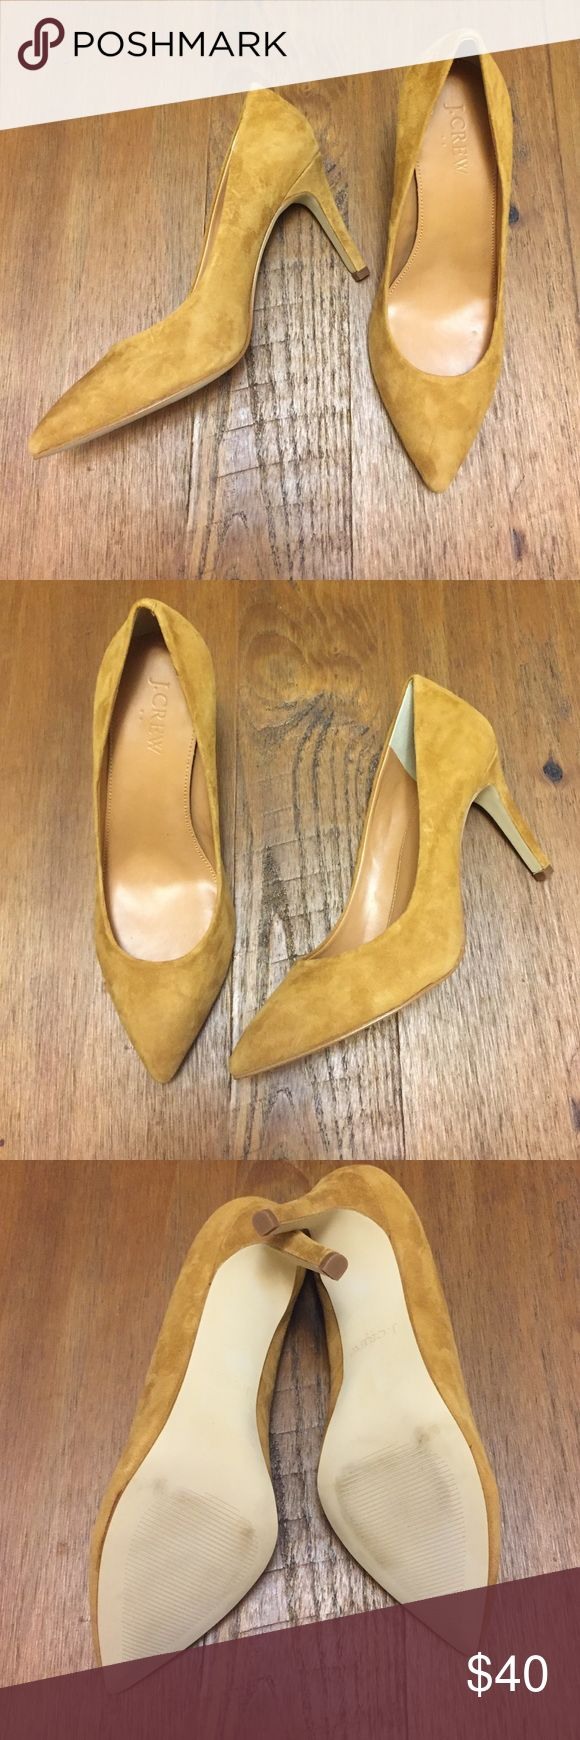 J Crew Factory Isabelle Suede pumps J Crew Outlet Isabella Pumps in suede size 6B. These are really pretty but I haven't had a chance to wear them. Looking for someone to give them a good home. 3 inch heel. Comes with original box. J. Crew Factory Shoes Heels